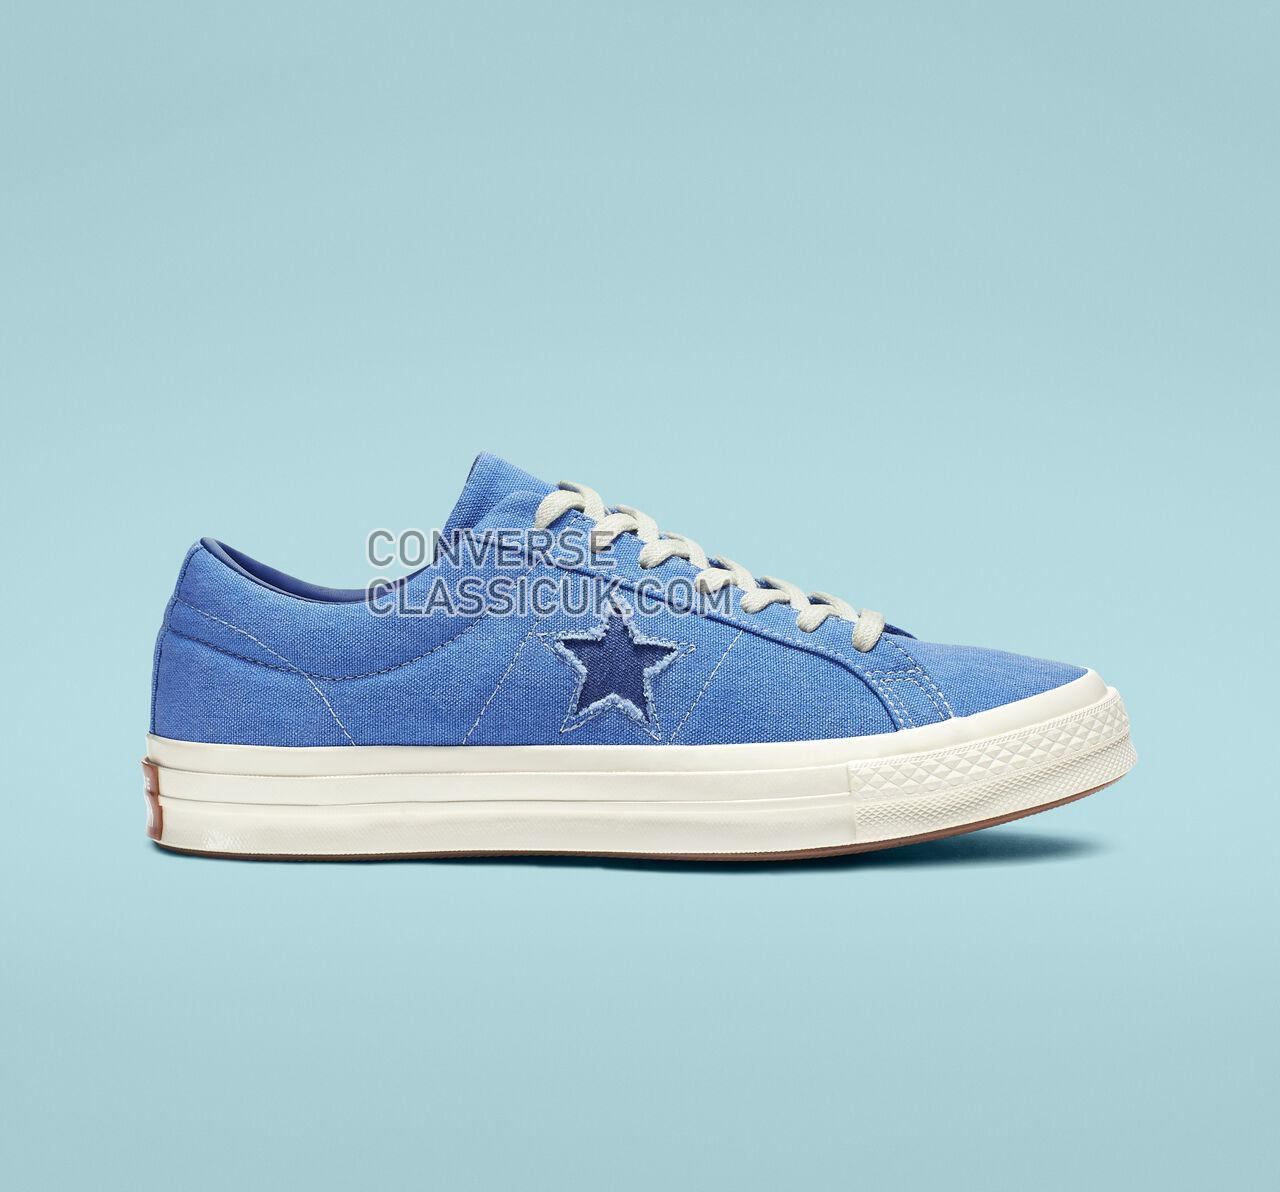 Converse One Star Sunbaked Mens Womens Unisex 164359C Totally Blue/Navy/Egret Shoes